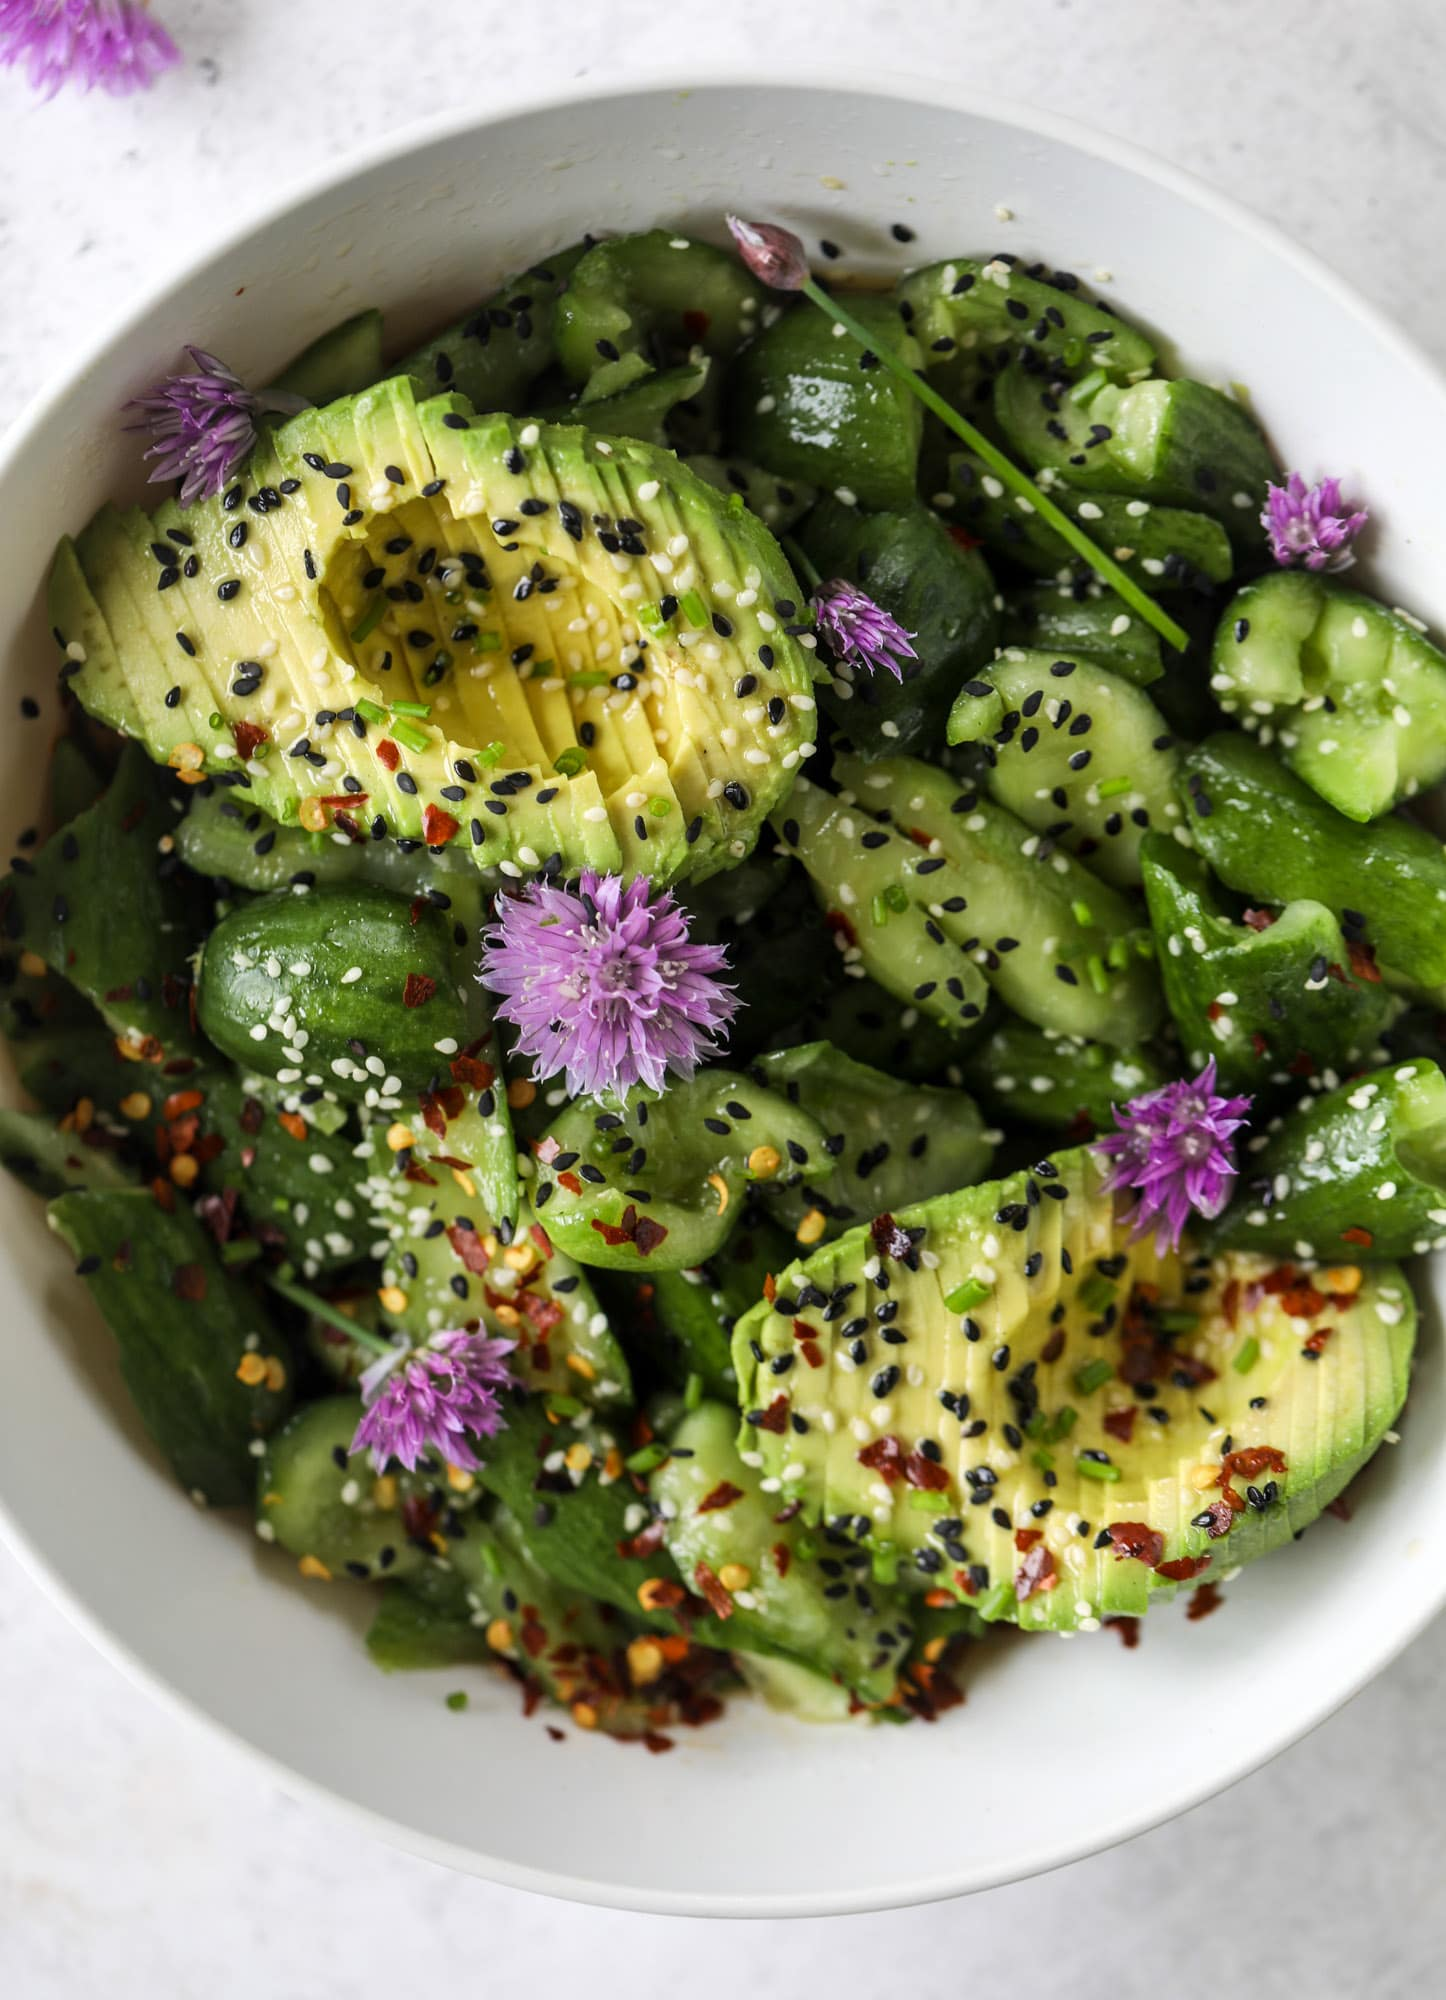 This smashed cucumber salad is so refreshing and perfect for summer! Served with avocado, toasted sesame oil and chives, it's ridiculously flavorful.